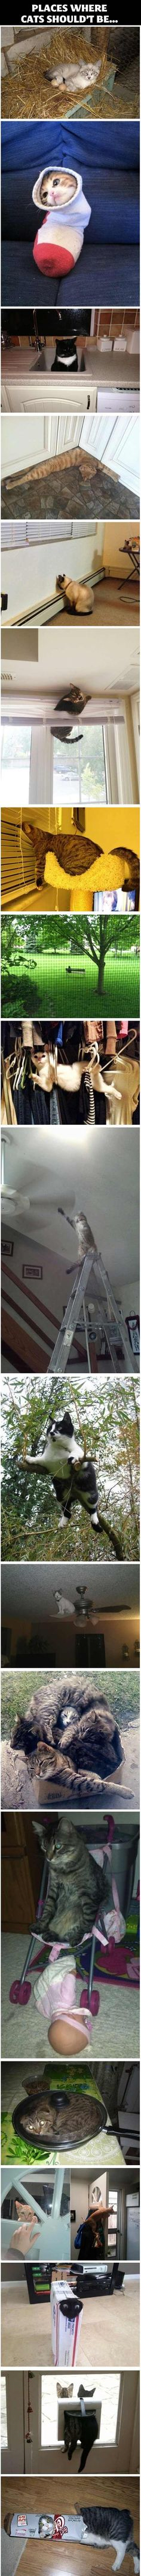 Places where cats shouldn't be… - One stop humour :: Lc- I love the 90 degree angle cat a whole lot, but I feel a little bad for the frying pan and ceiling fan kittehs